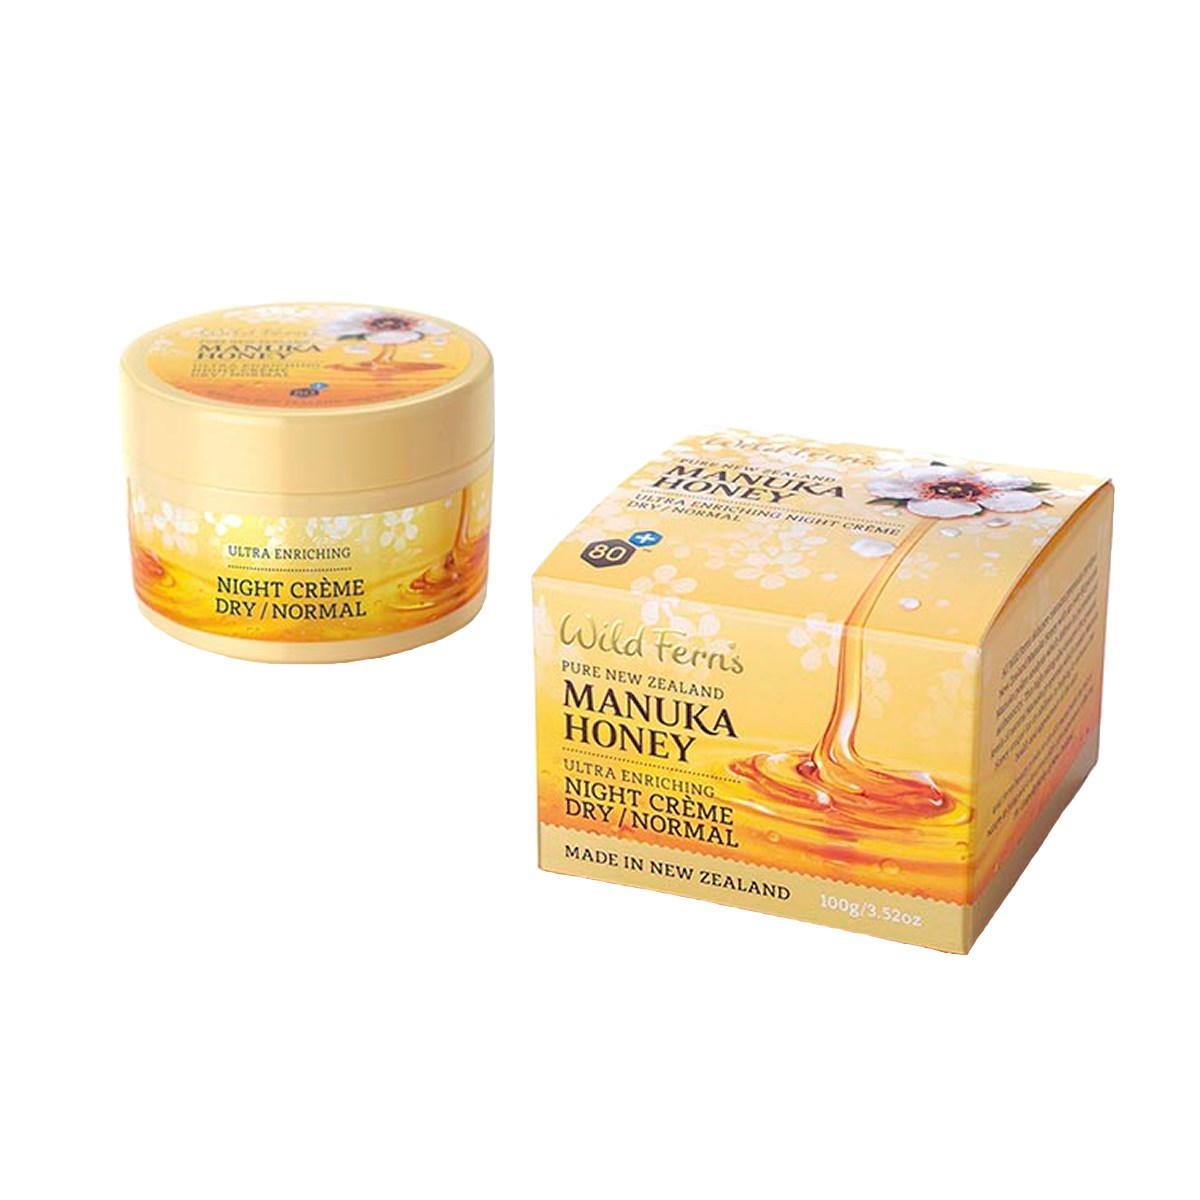 Wild Ferns Manuka Honey Ultra Enriching Night Cream - Dry to Normal